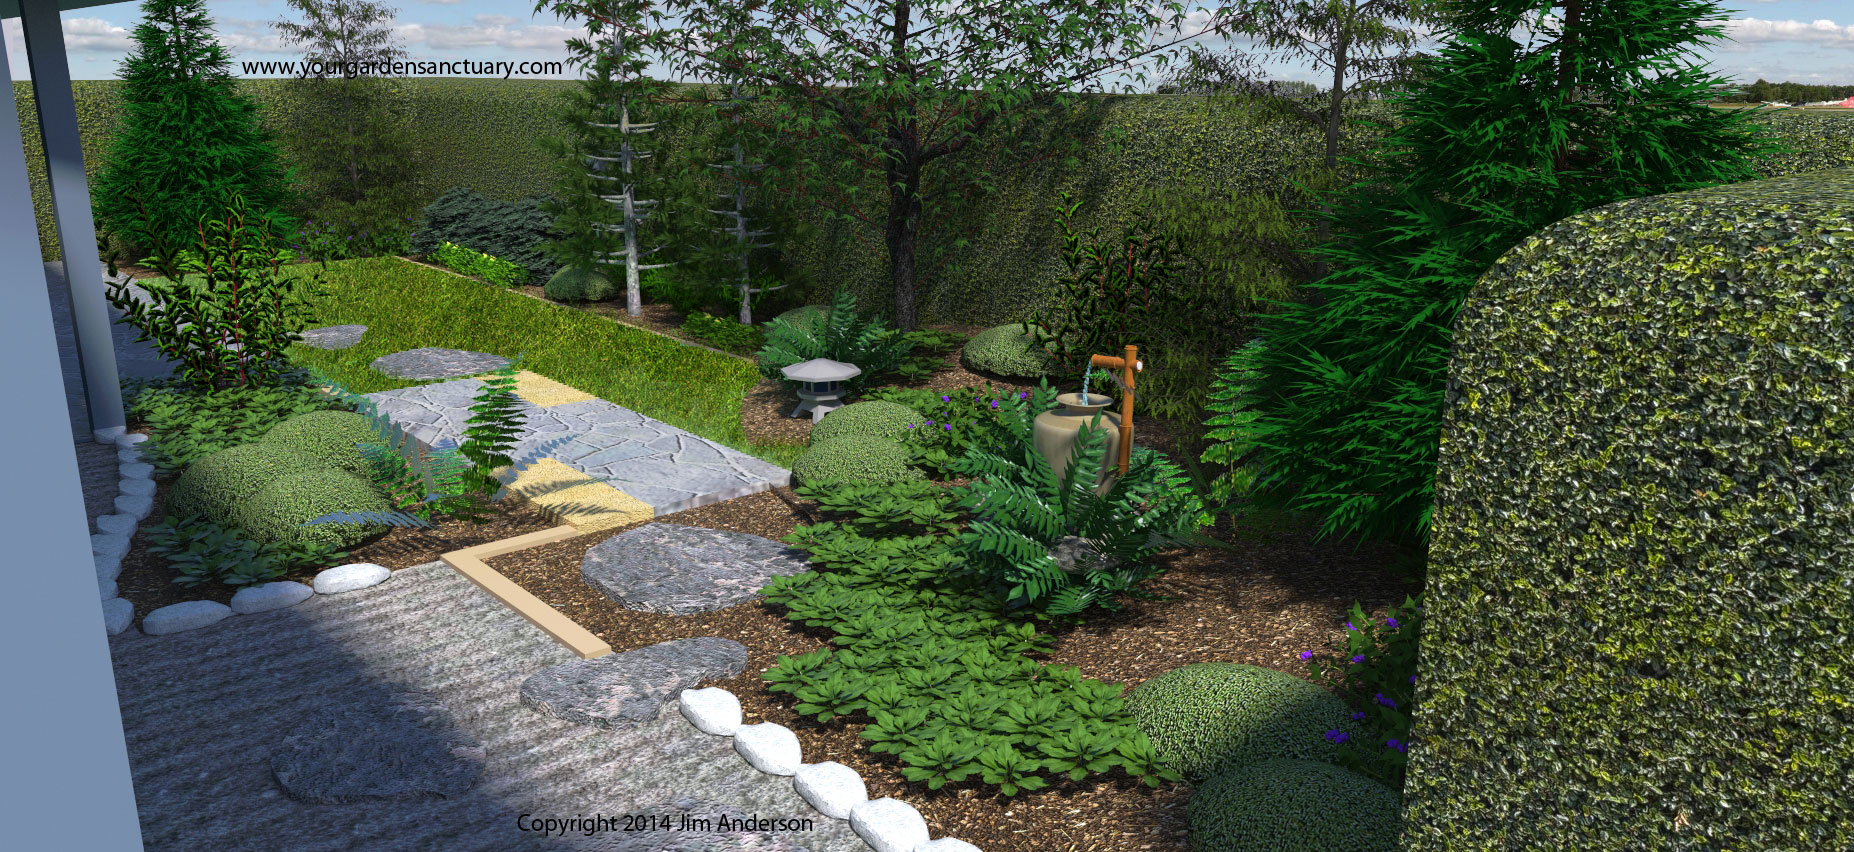 Small backyard Japanese garden design Part 5 adding a tsukubai